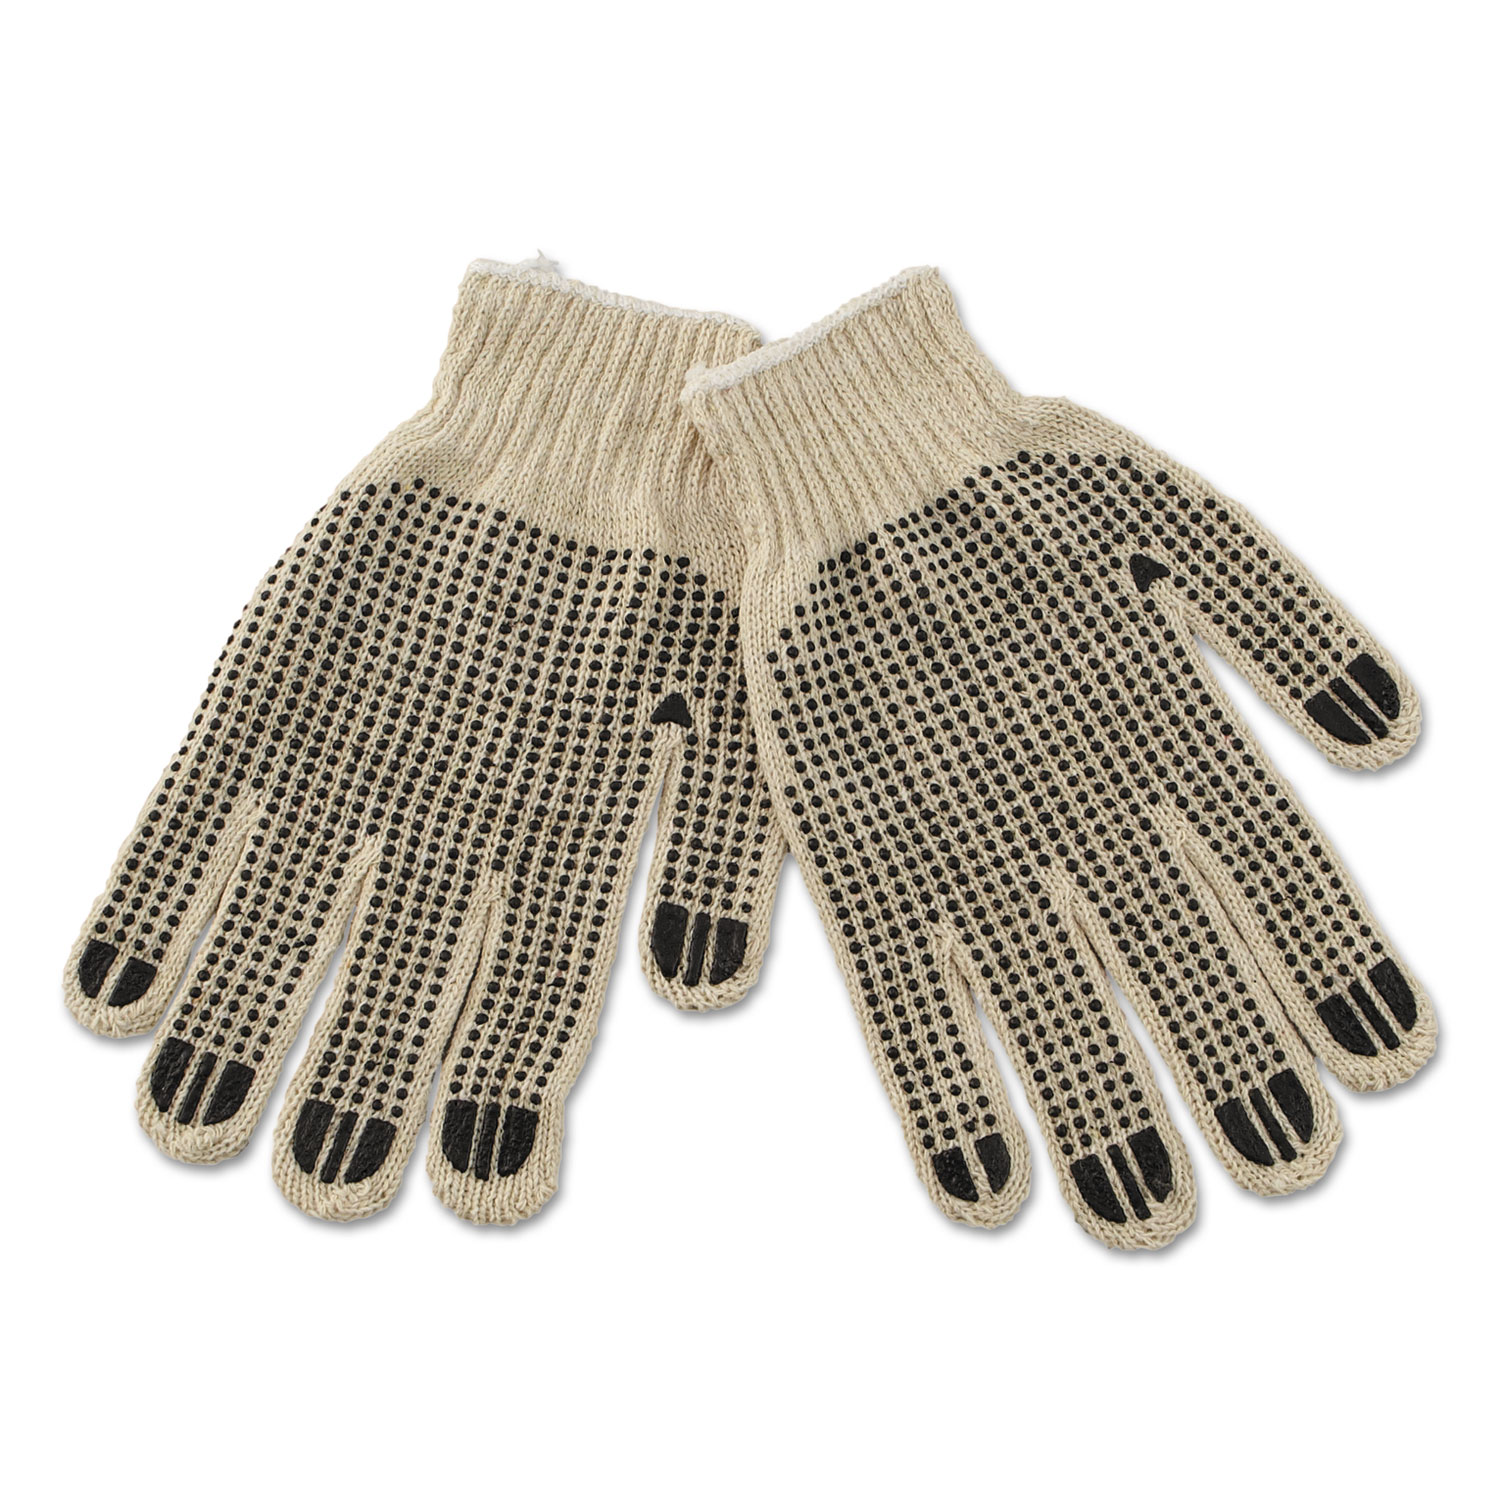 PVC-Dotted String Knit Gloves, Large, Dozen